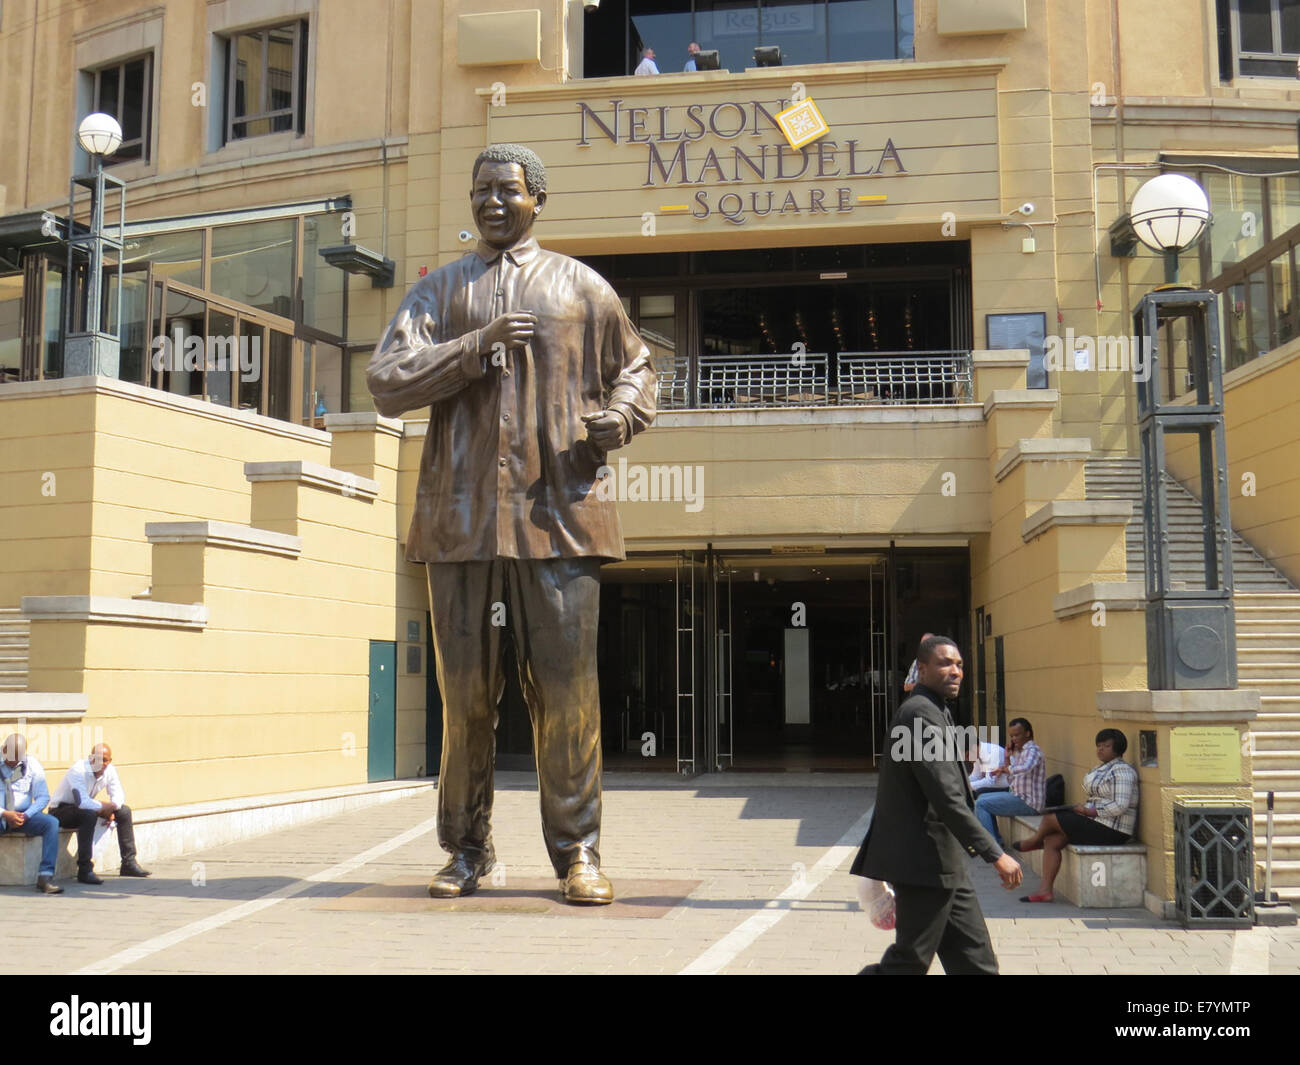 JOHANNESBURG  Nelson Mandela Square in Sandton. Photo Tony Gale - Stock Image